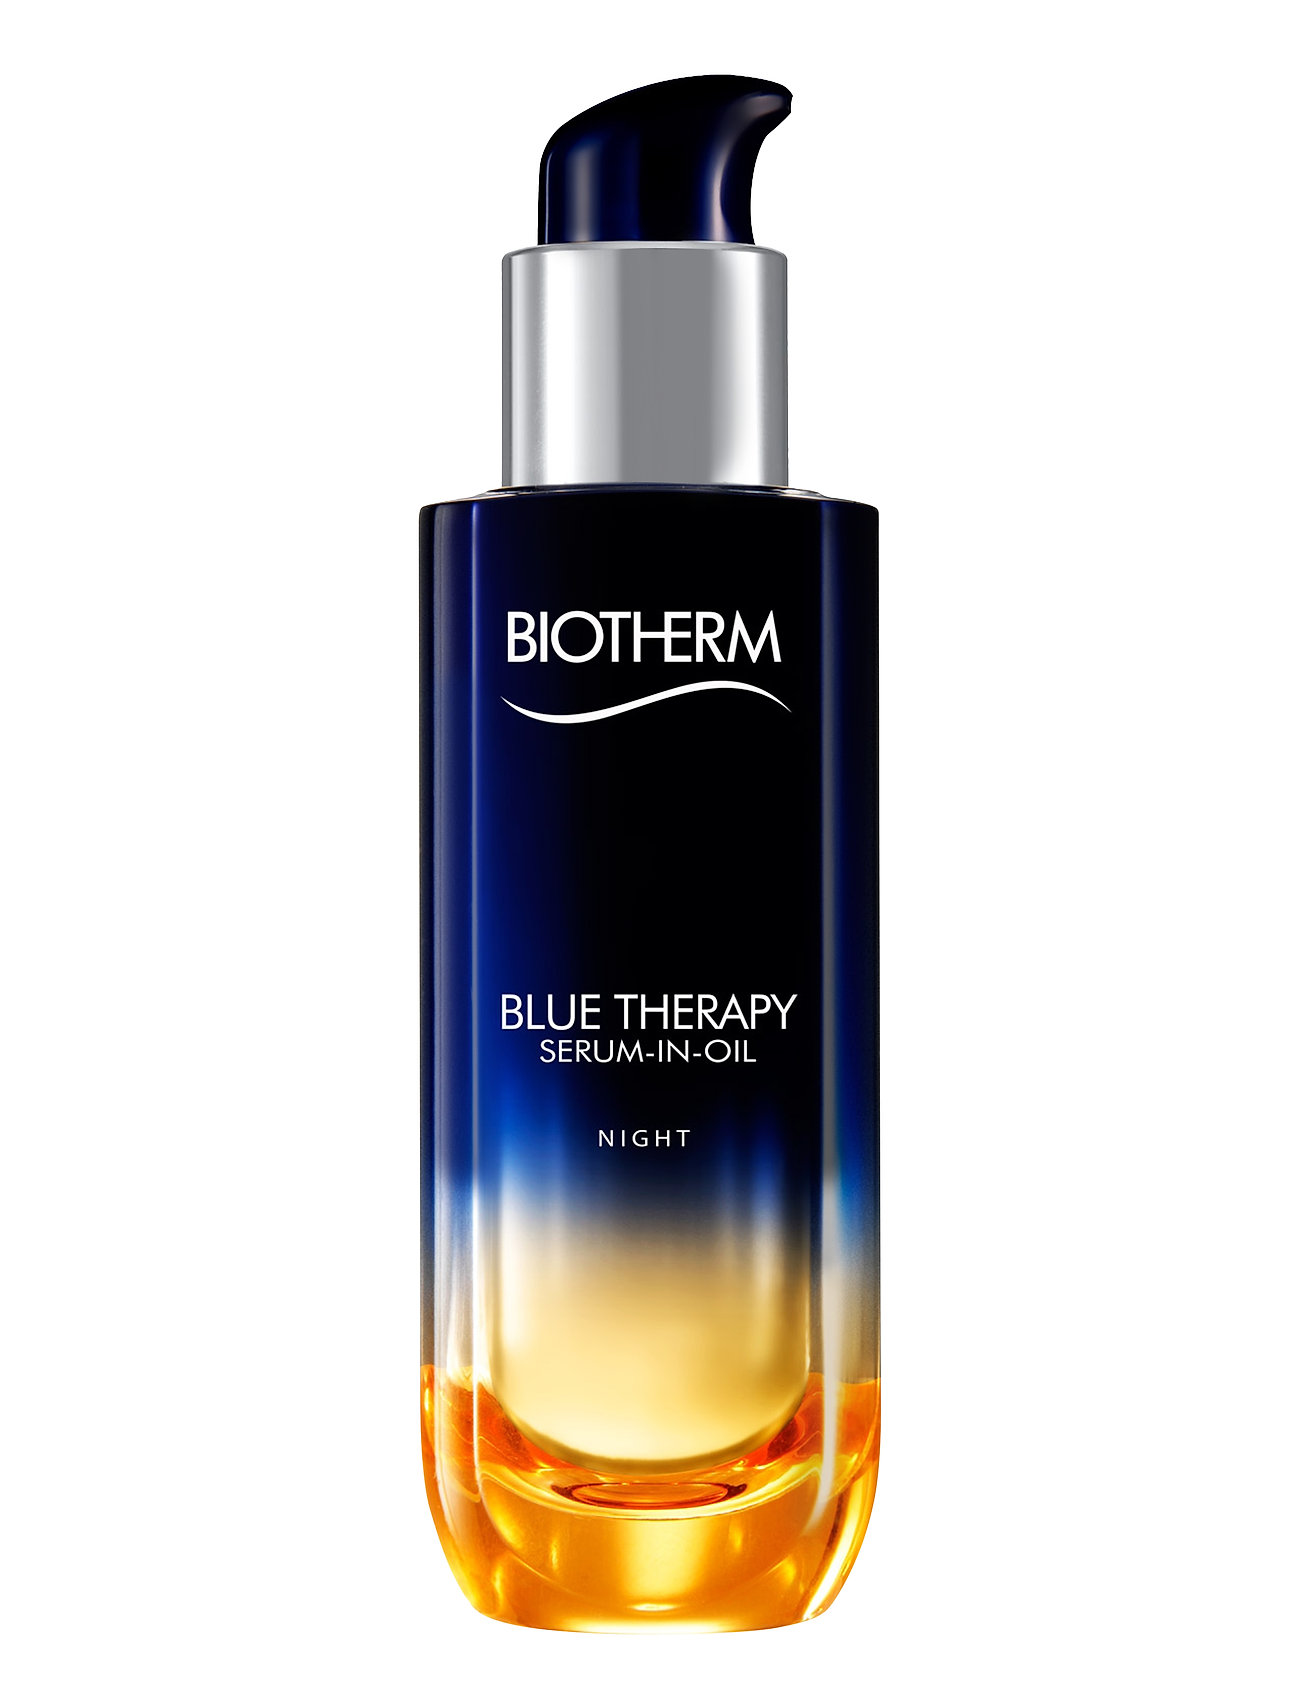 biotherm – Biotherm blue therapy serum-in-oil accelerated 50 ml på boozt.com dk